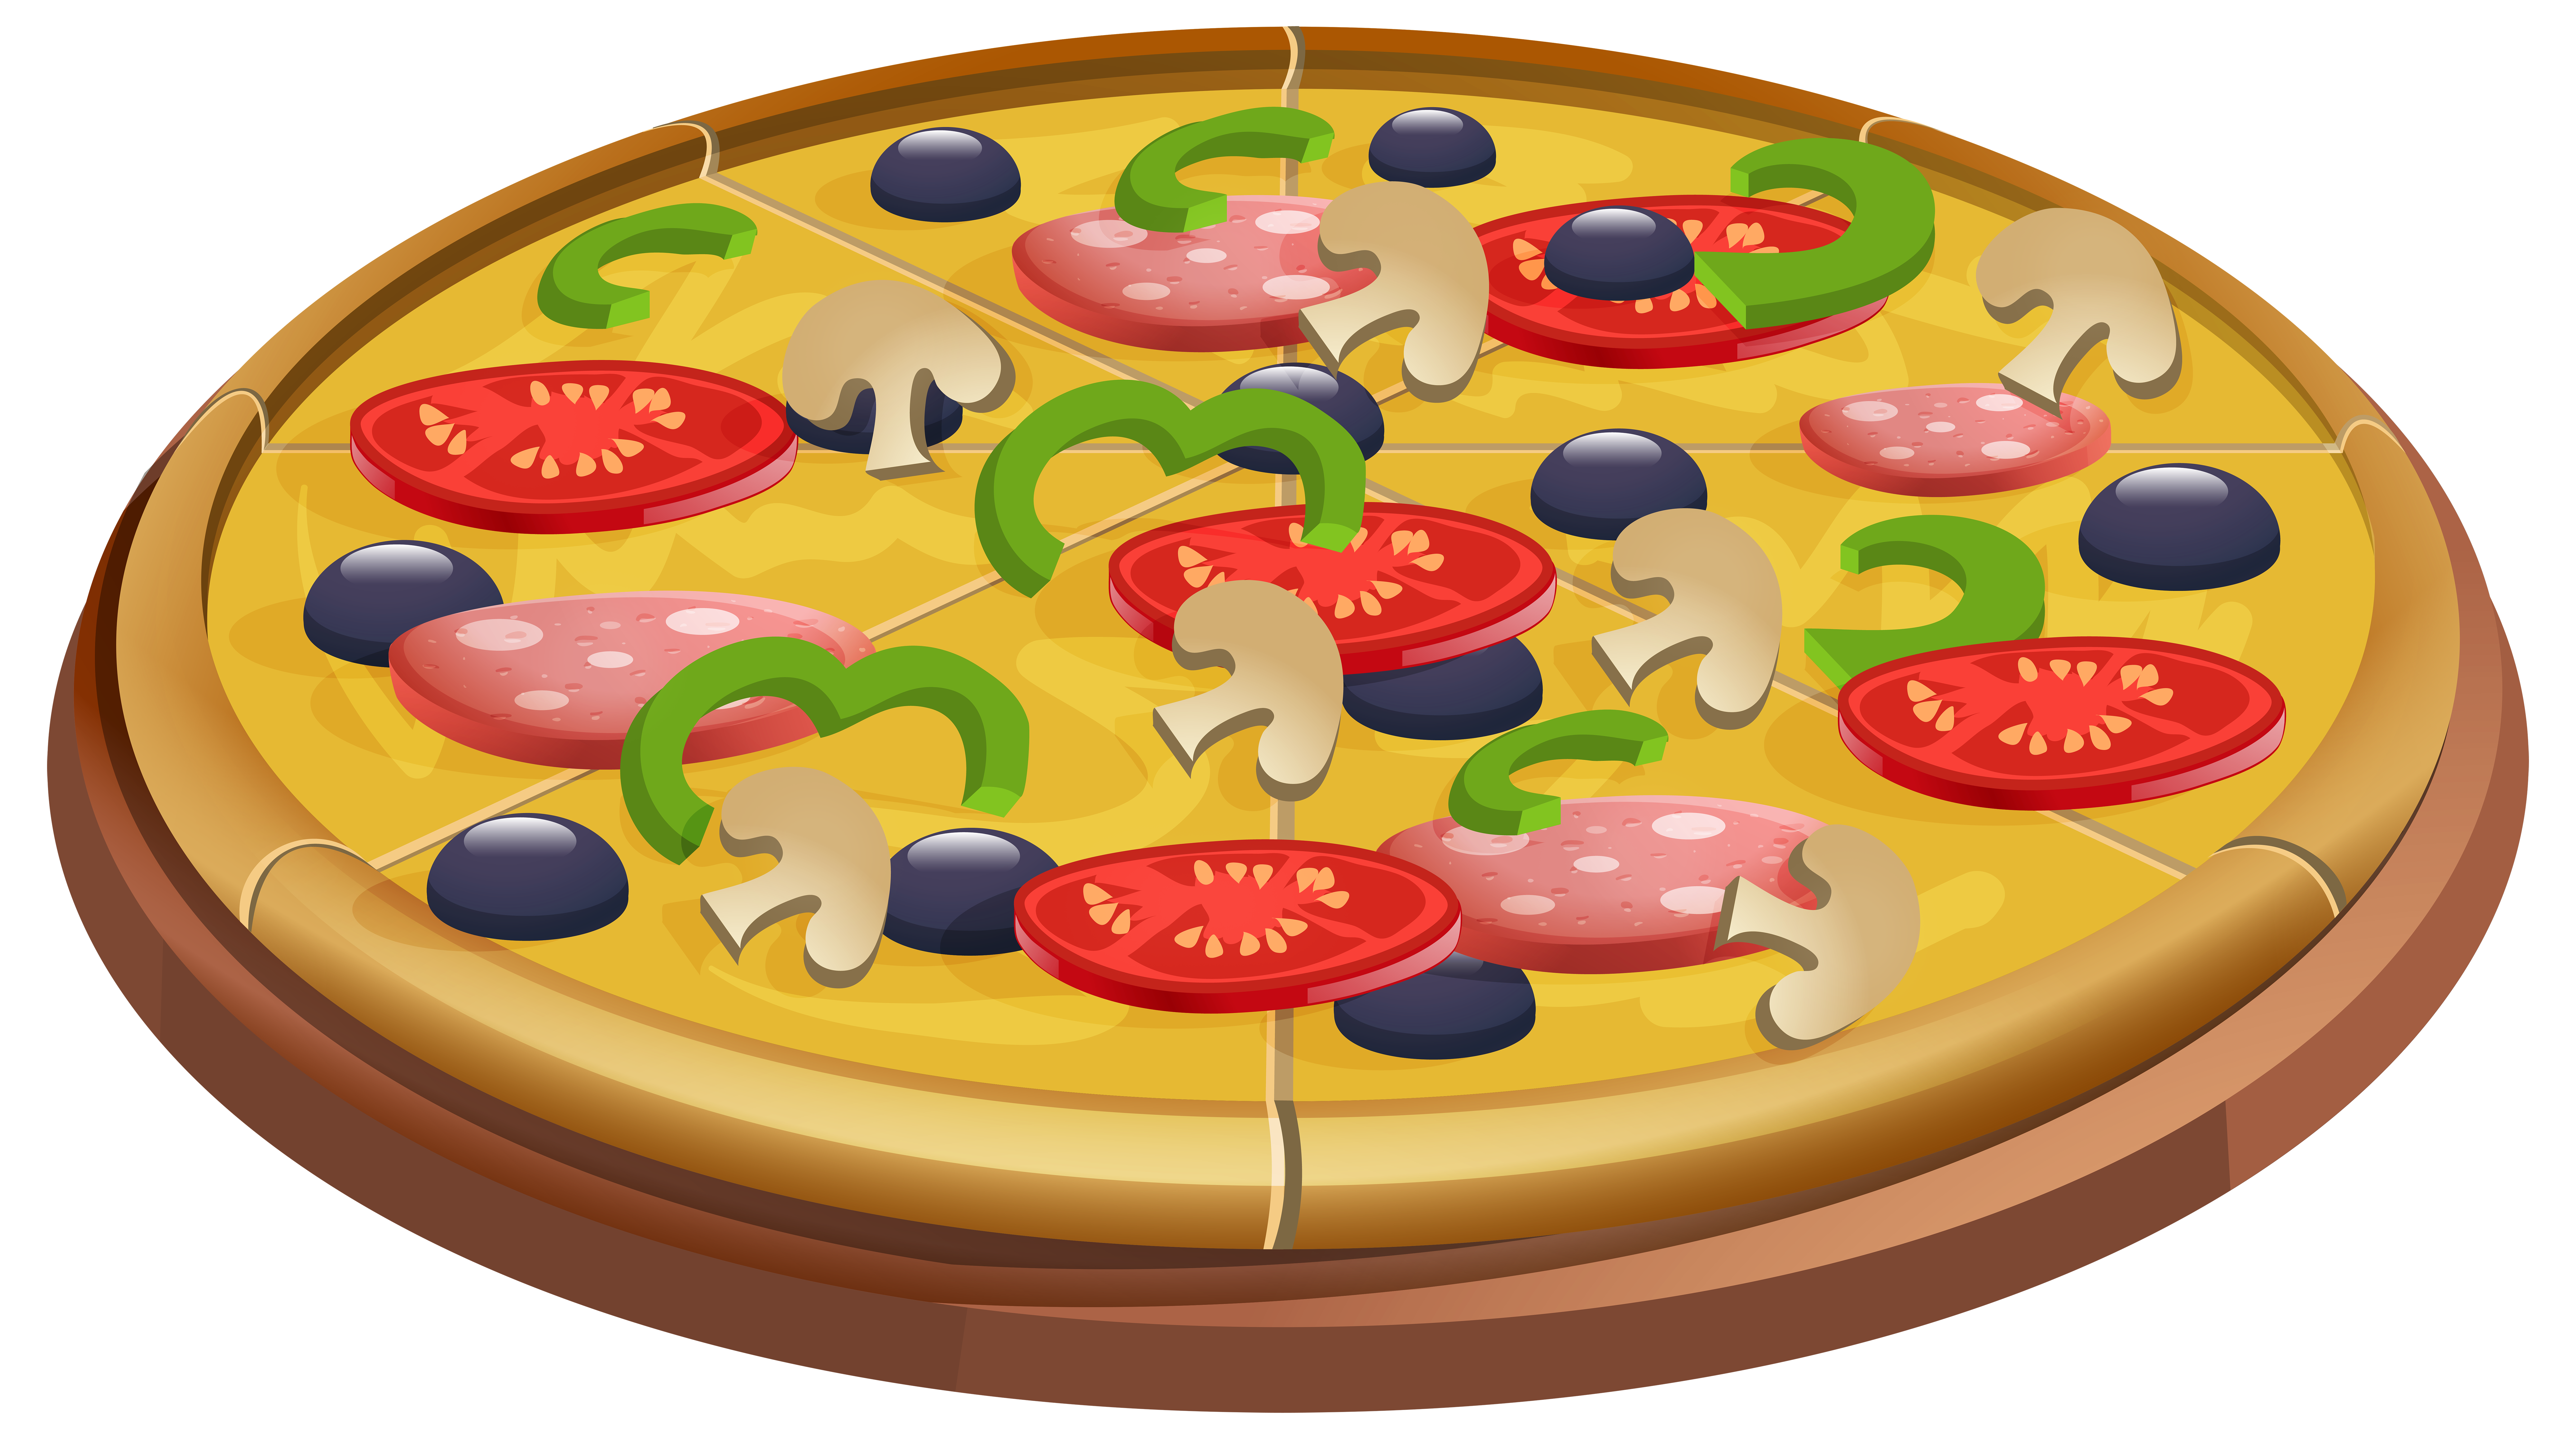 Png clip art image. Halloween clipart pizza